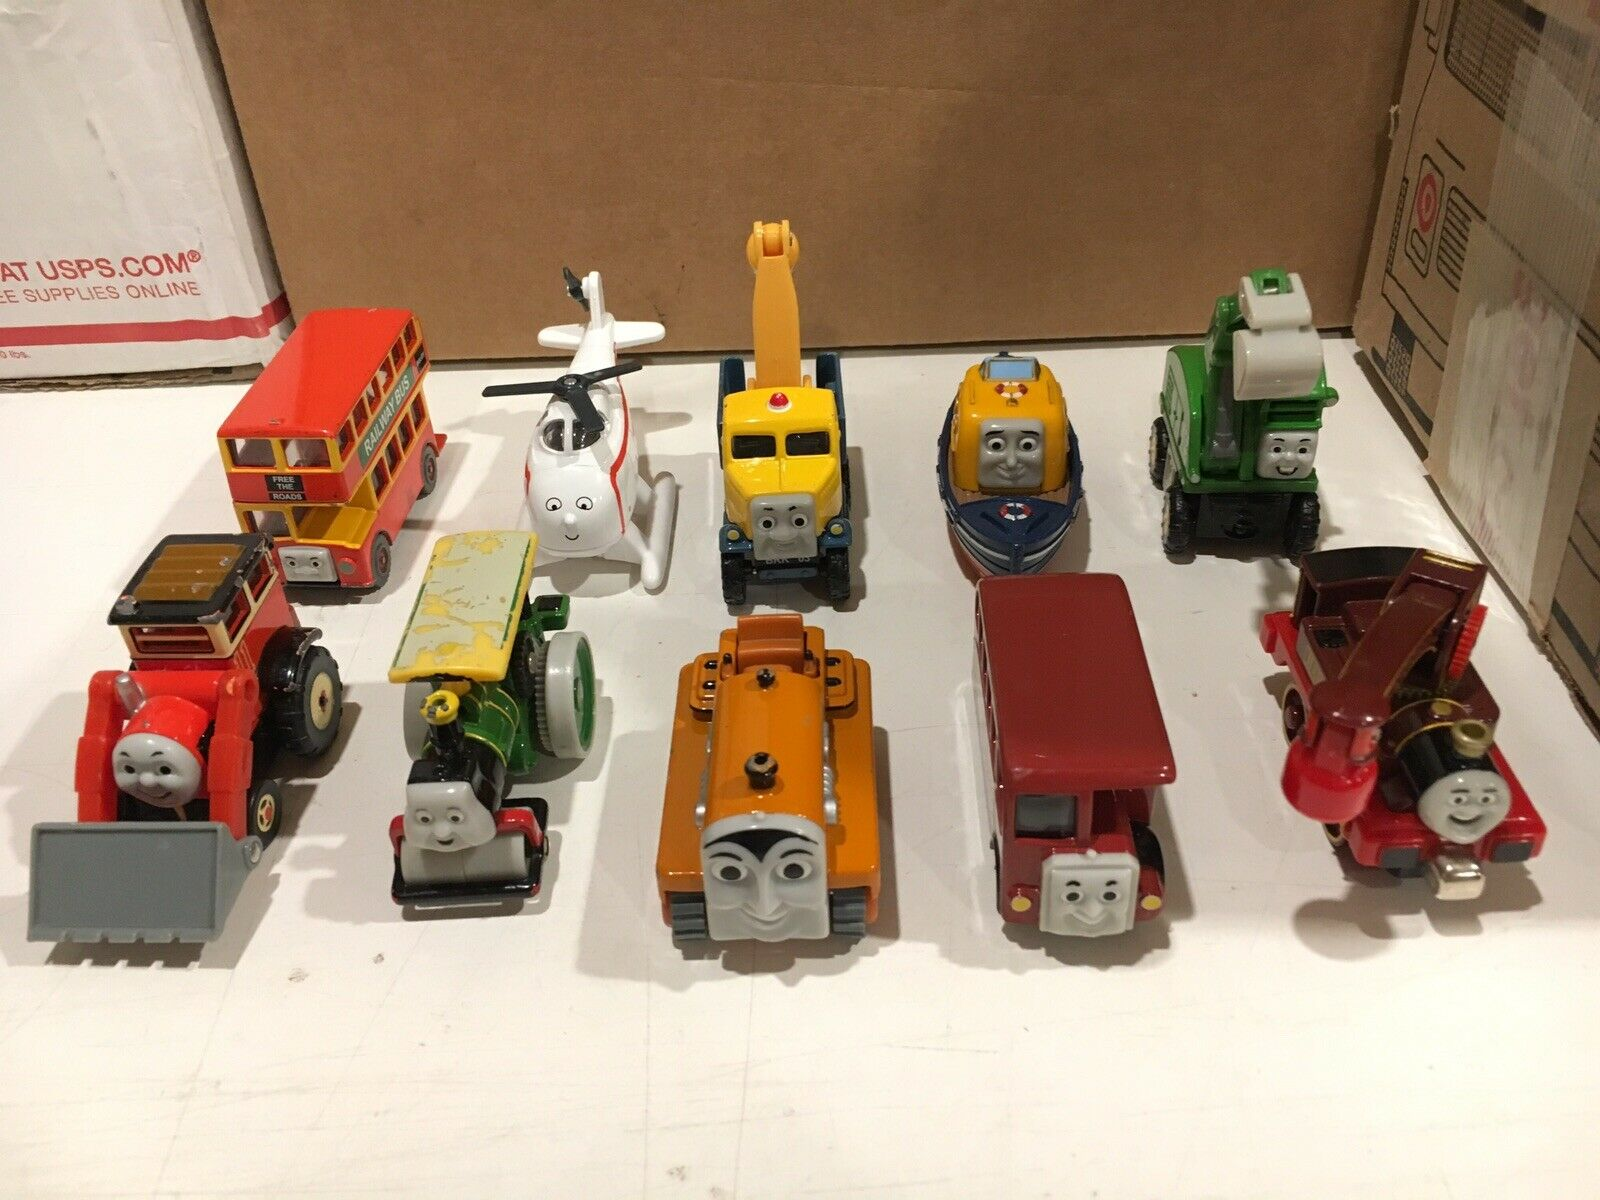 10 Diecast Thomas & Friends Take N Play Construction, Bus, Helicopter, Boat